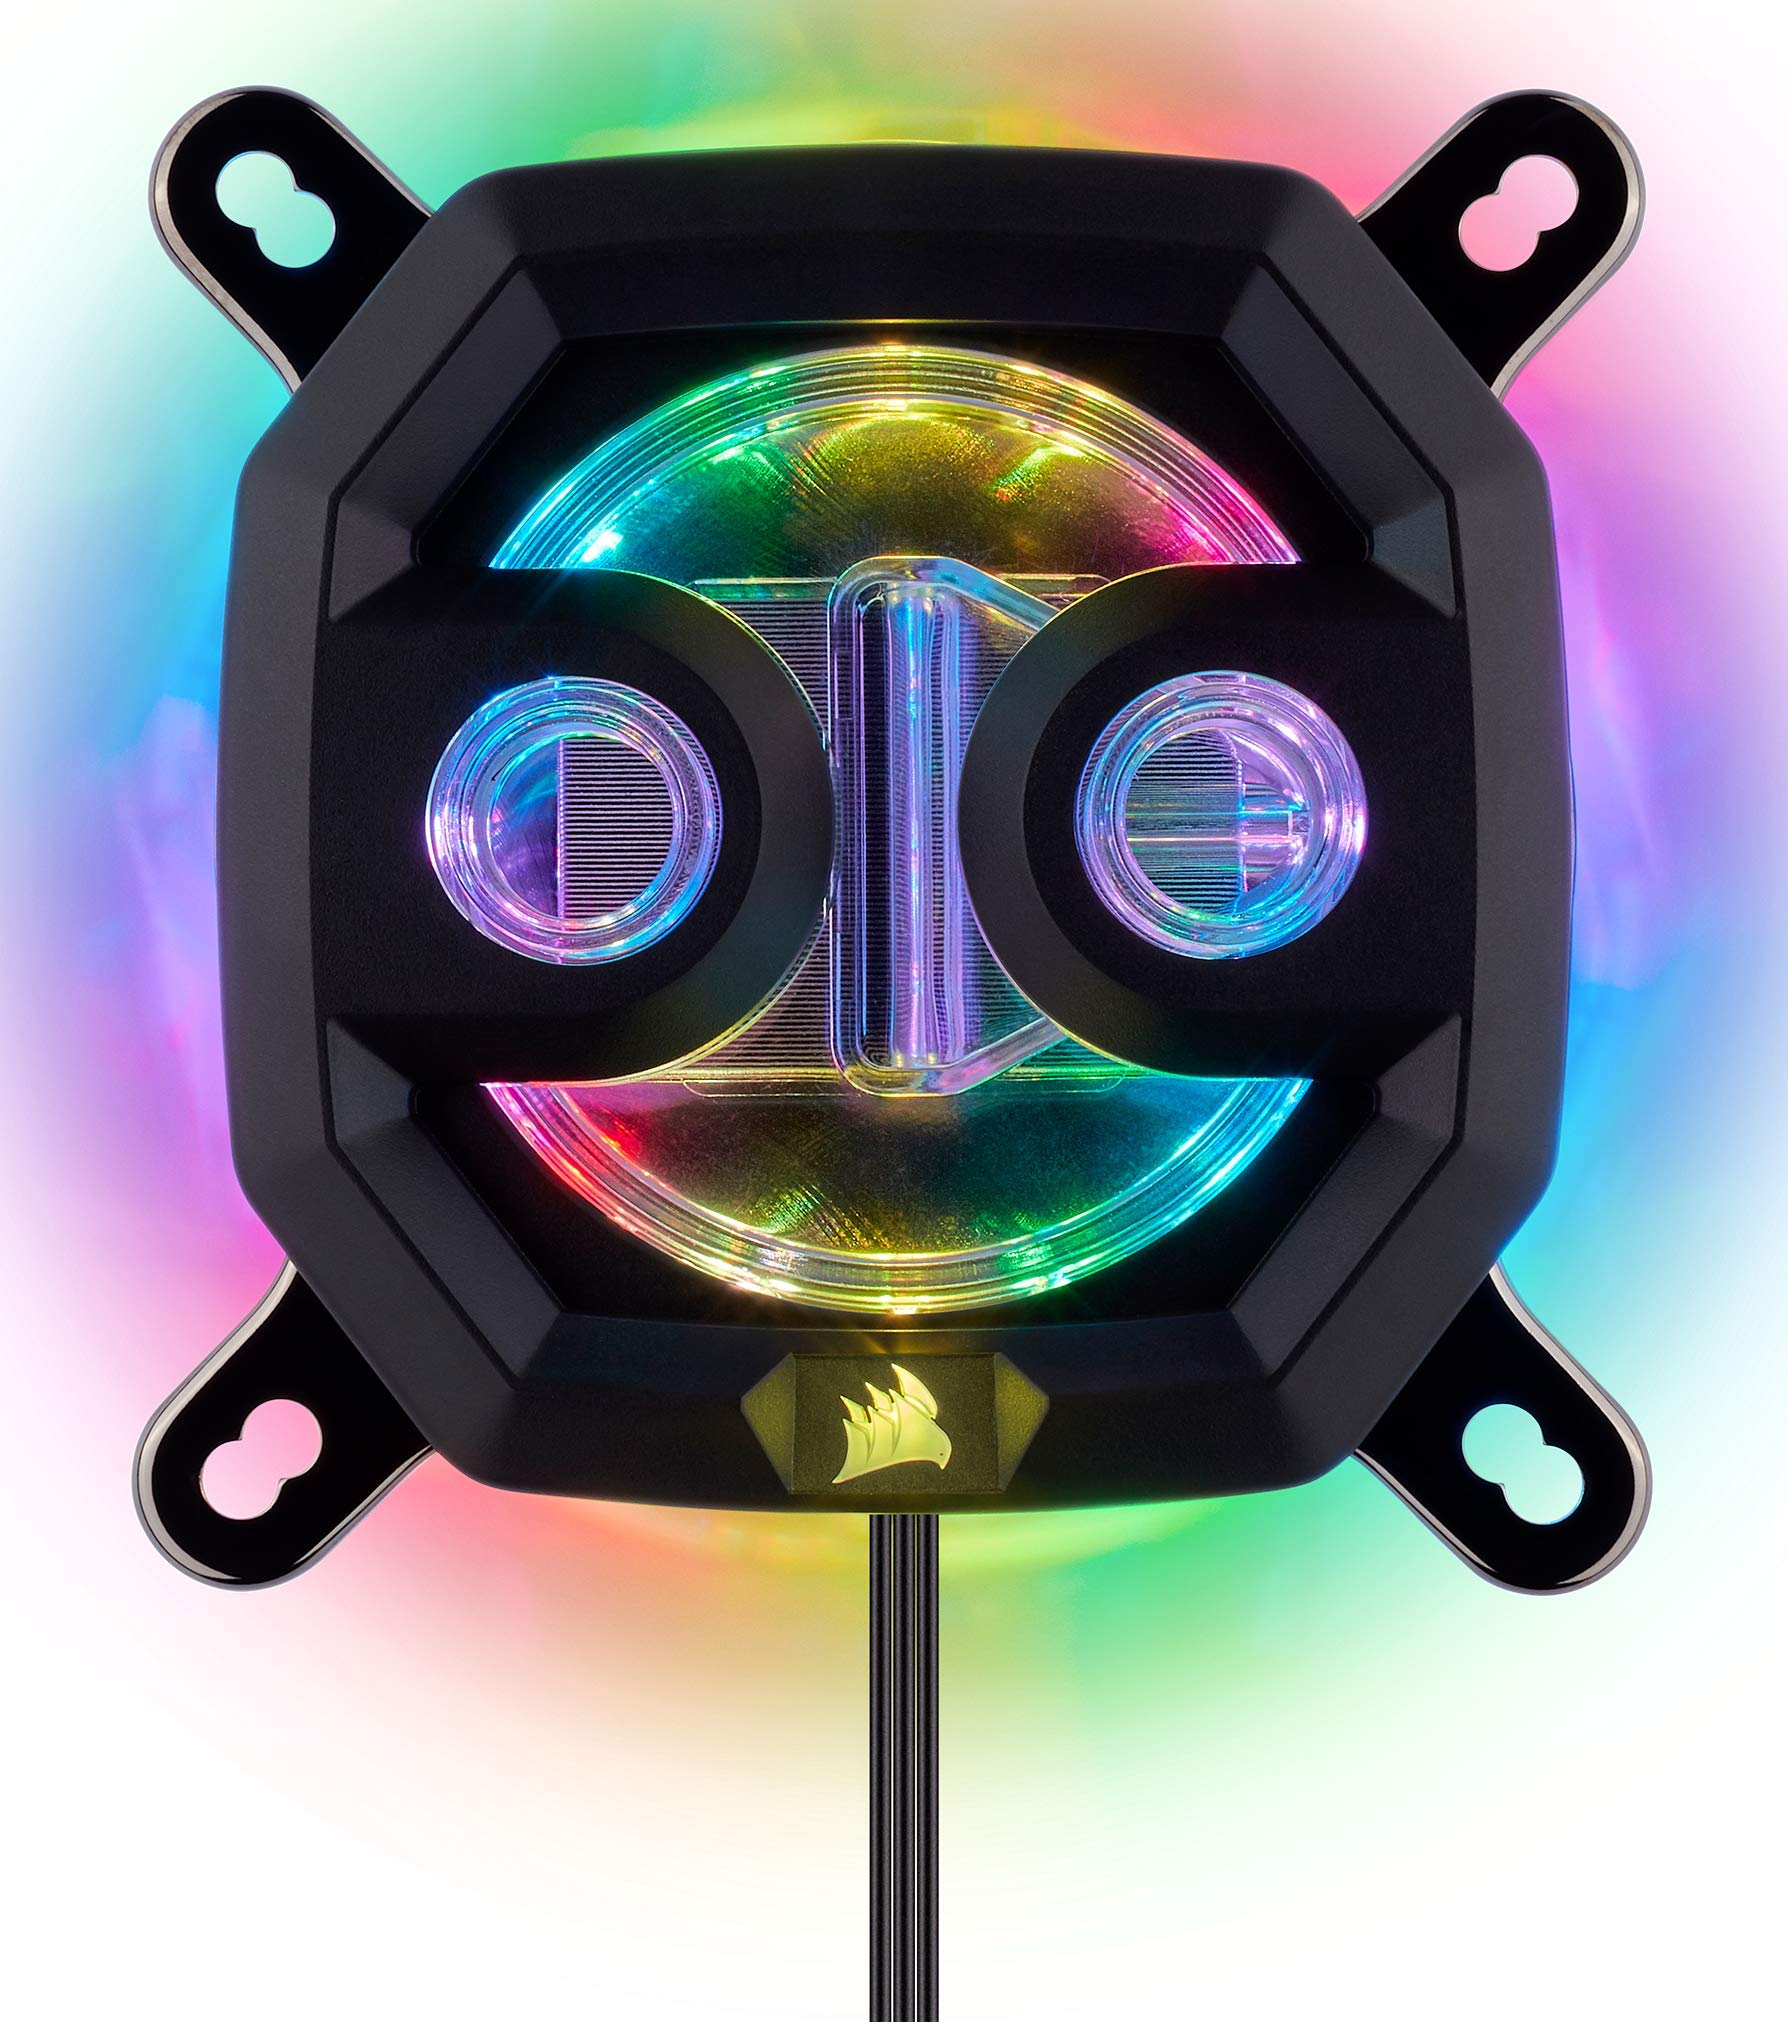 CORSAIR Hydro X Series,XC7 RGB CPU Water Block,16 Individually addressable RGB LEDs,Software-Enabled, 115X/AM4 by Corsair